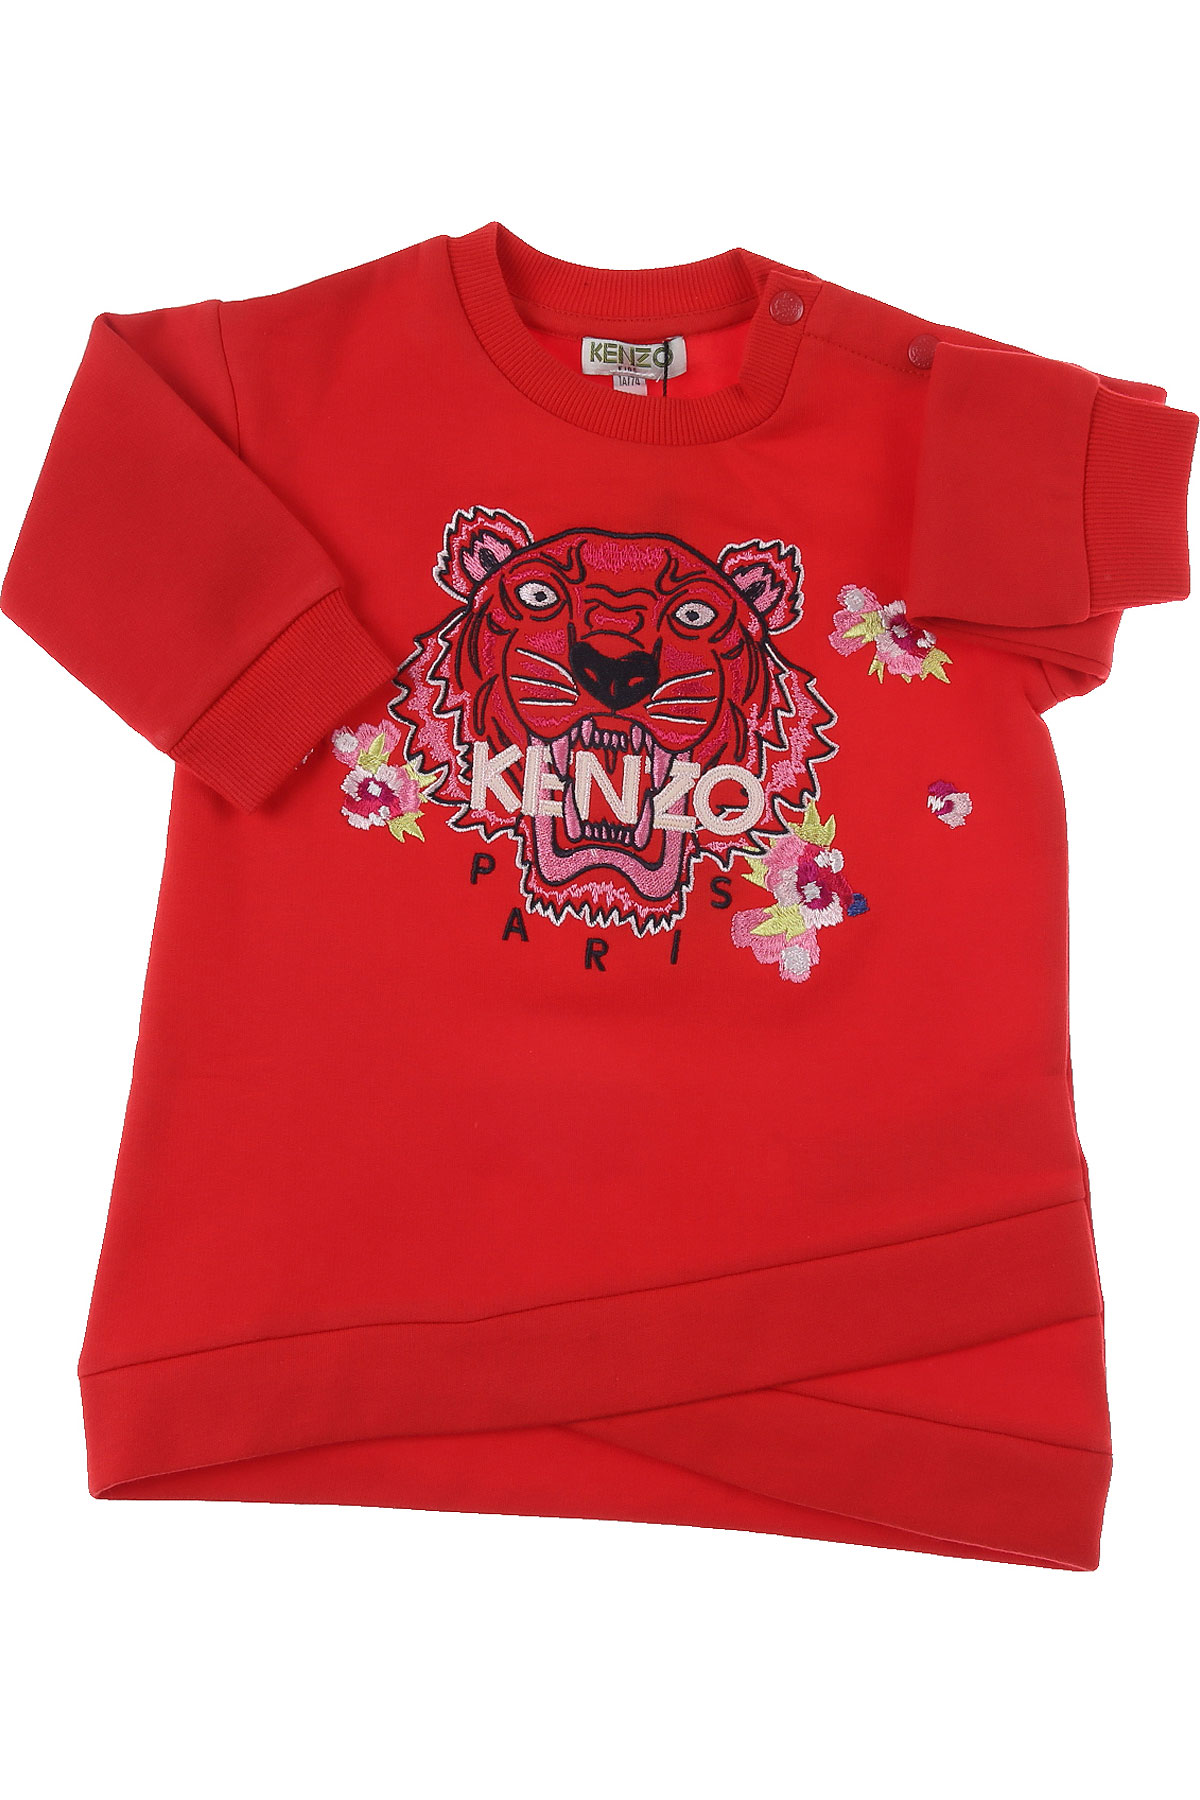 Kenzo Baby Dress for Girls On Sale, Red, Cotton, 2019, 12M 18M